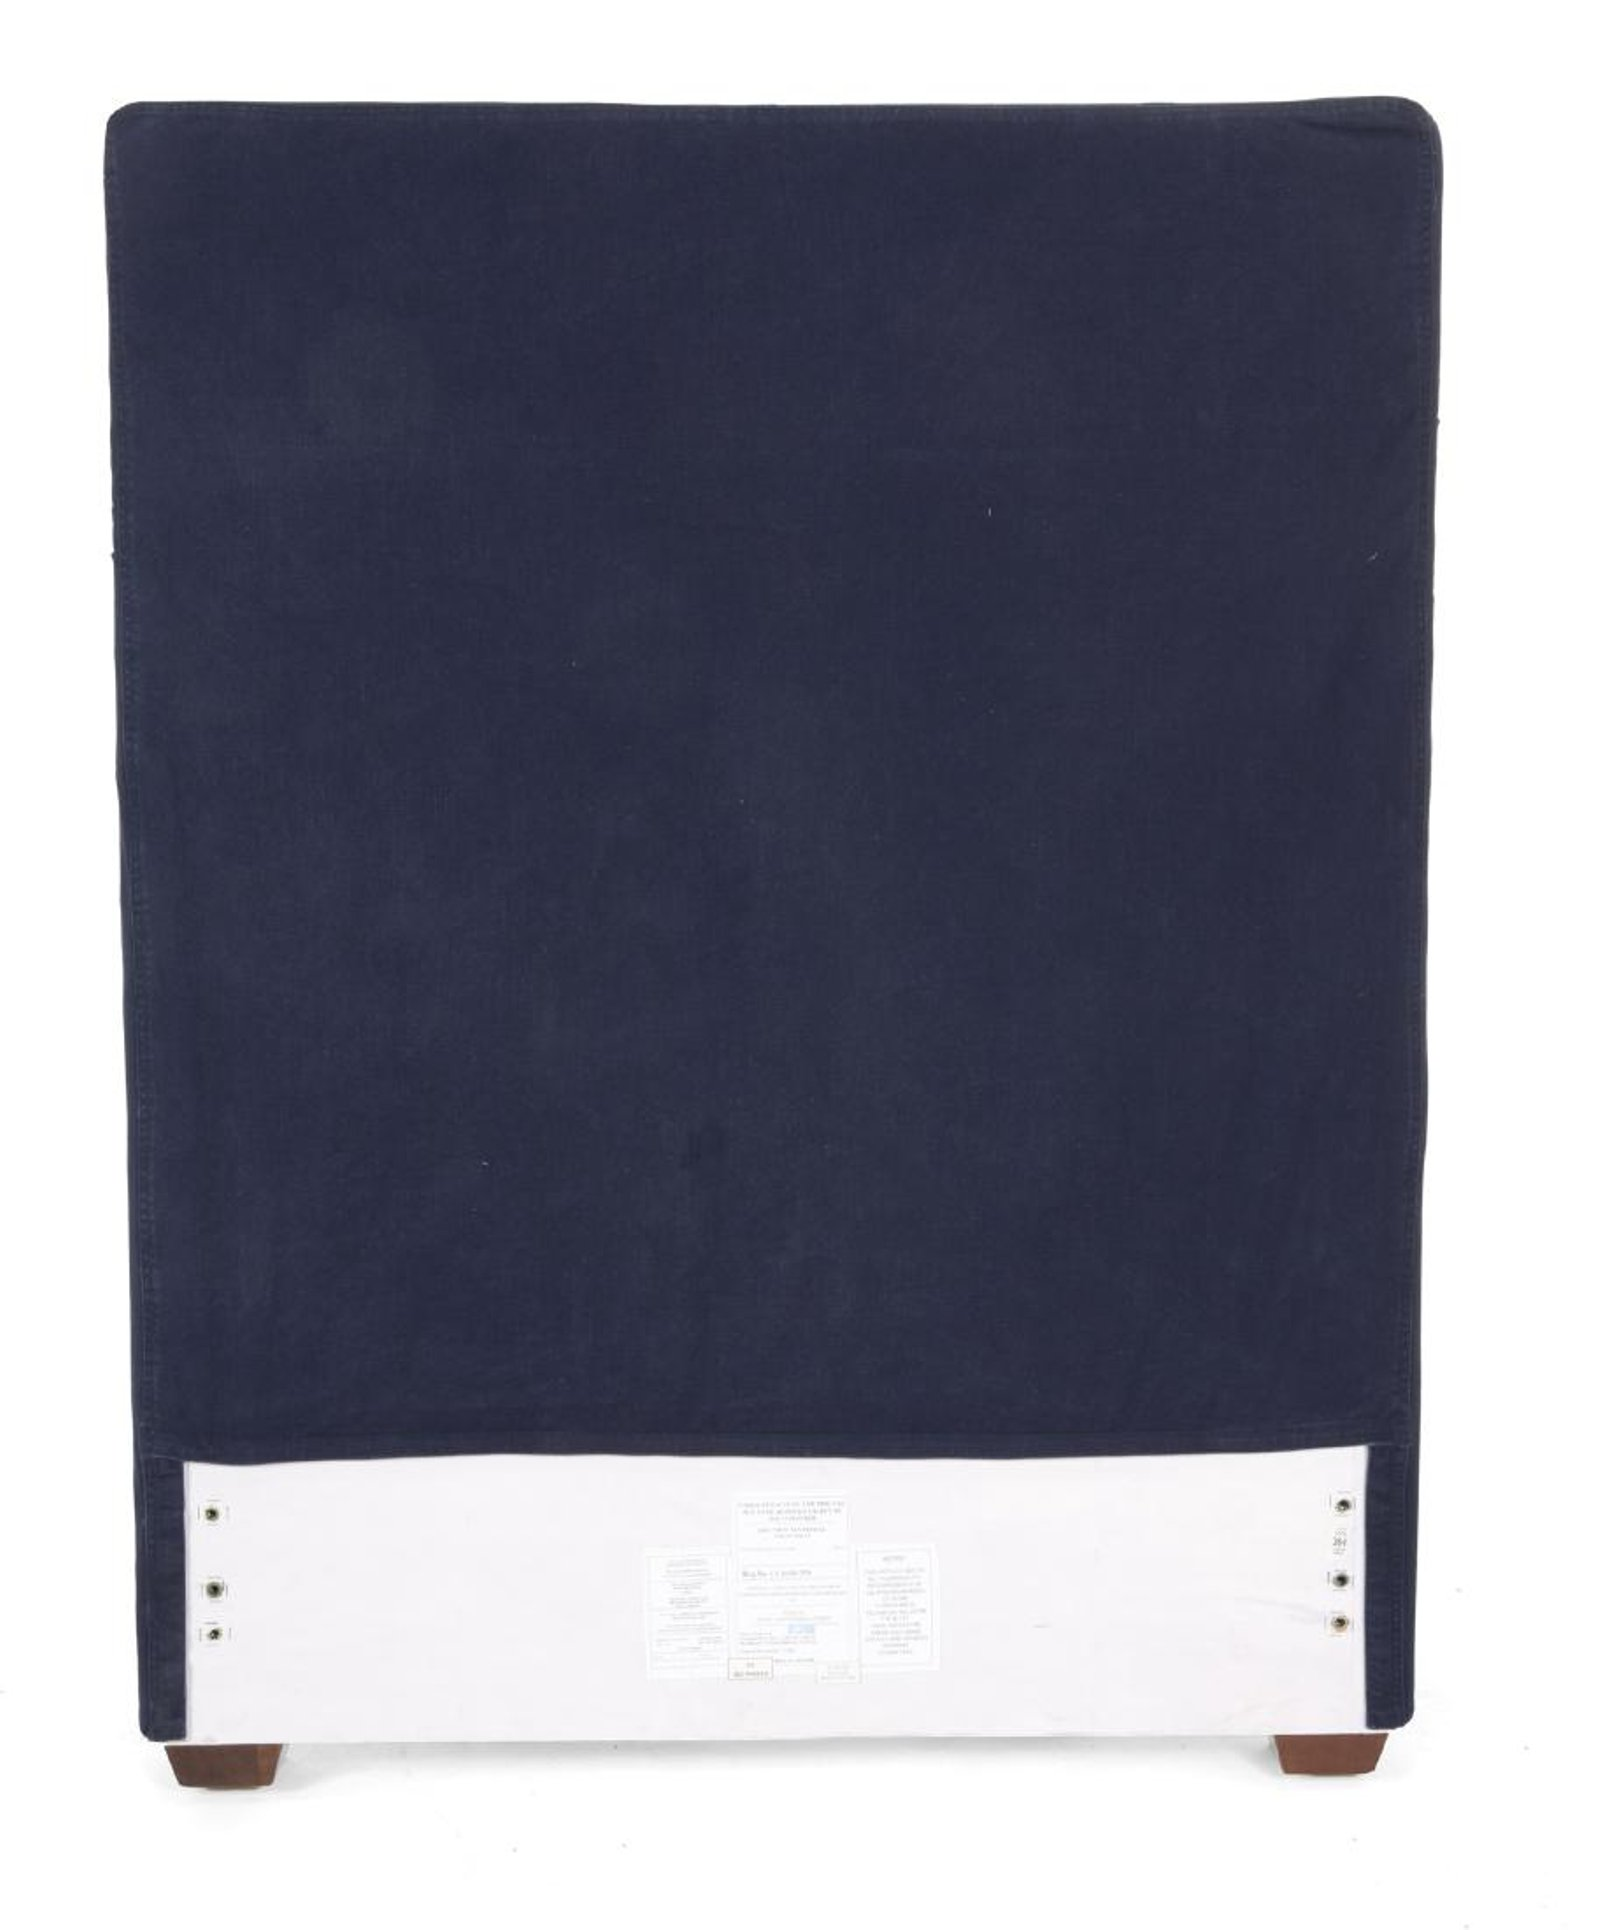 hilfiger_navy_canvas_headboards.jpg